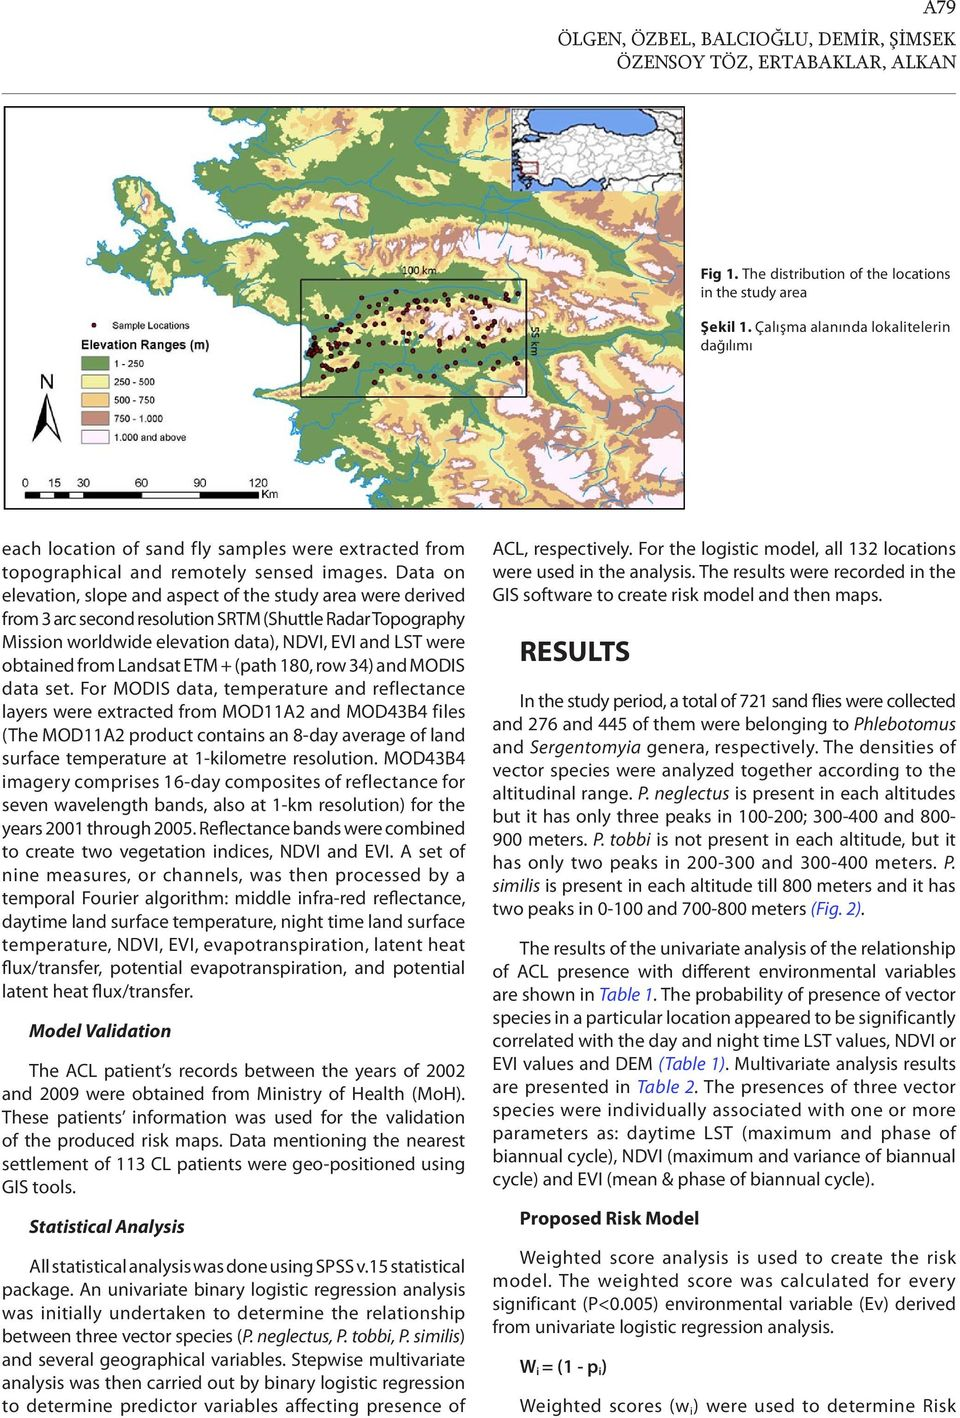 Data on elevation, slope and aspect of the study area were derived from 3 arc second resolution SRTM (Shuttle Radar Topography Mission worldwide elevation data), NDVI, EVI and LST were obtained from